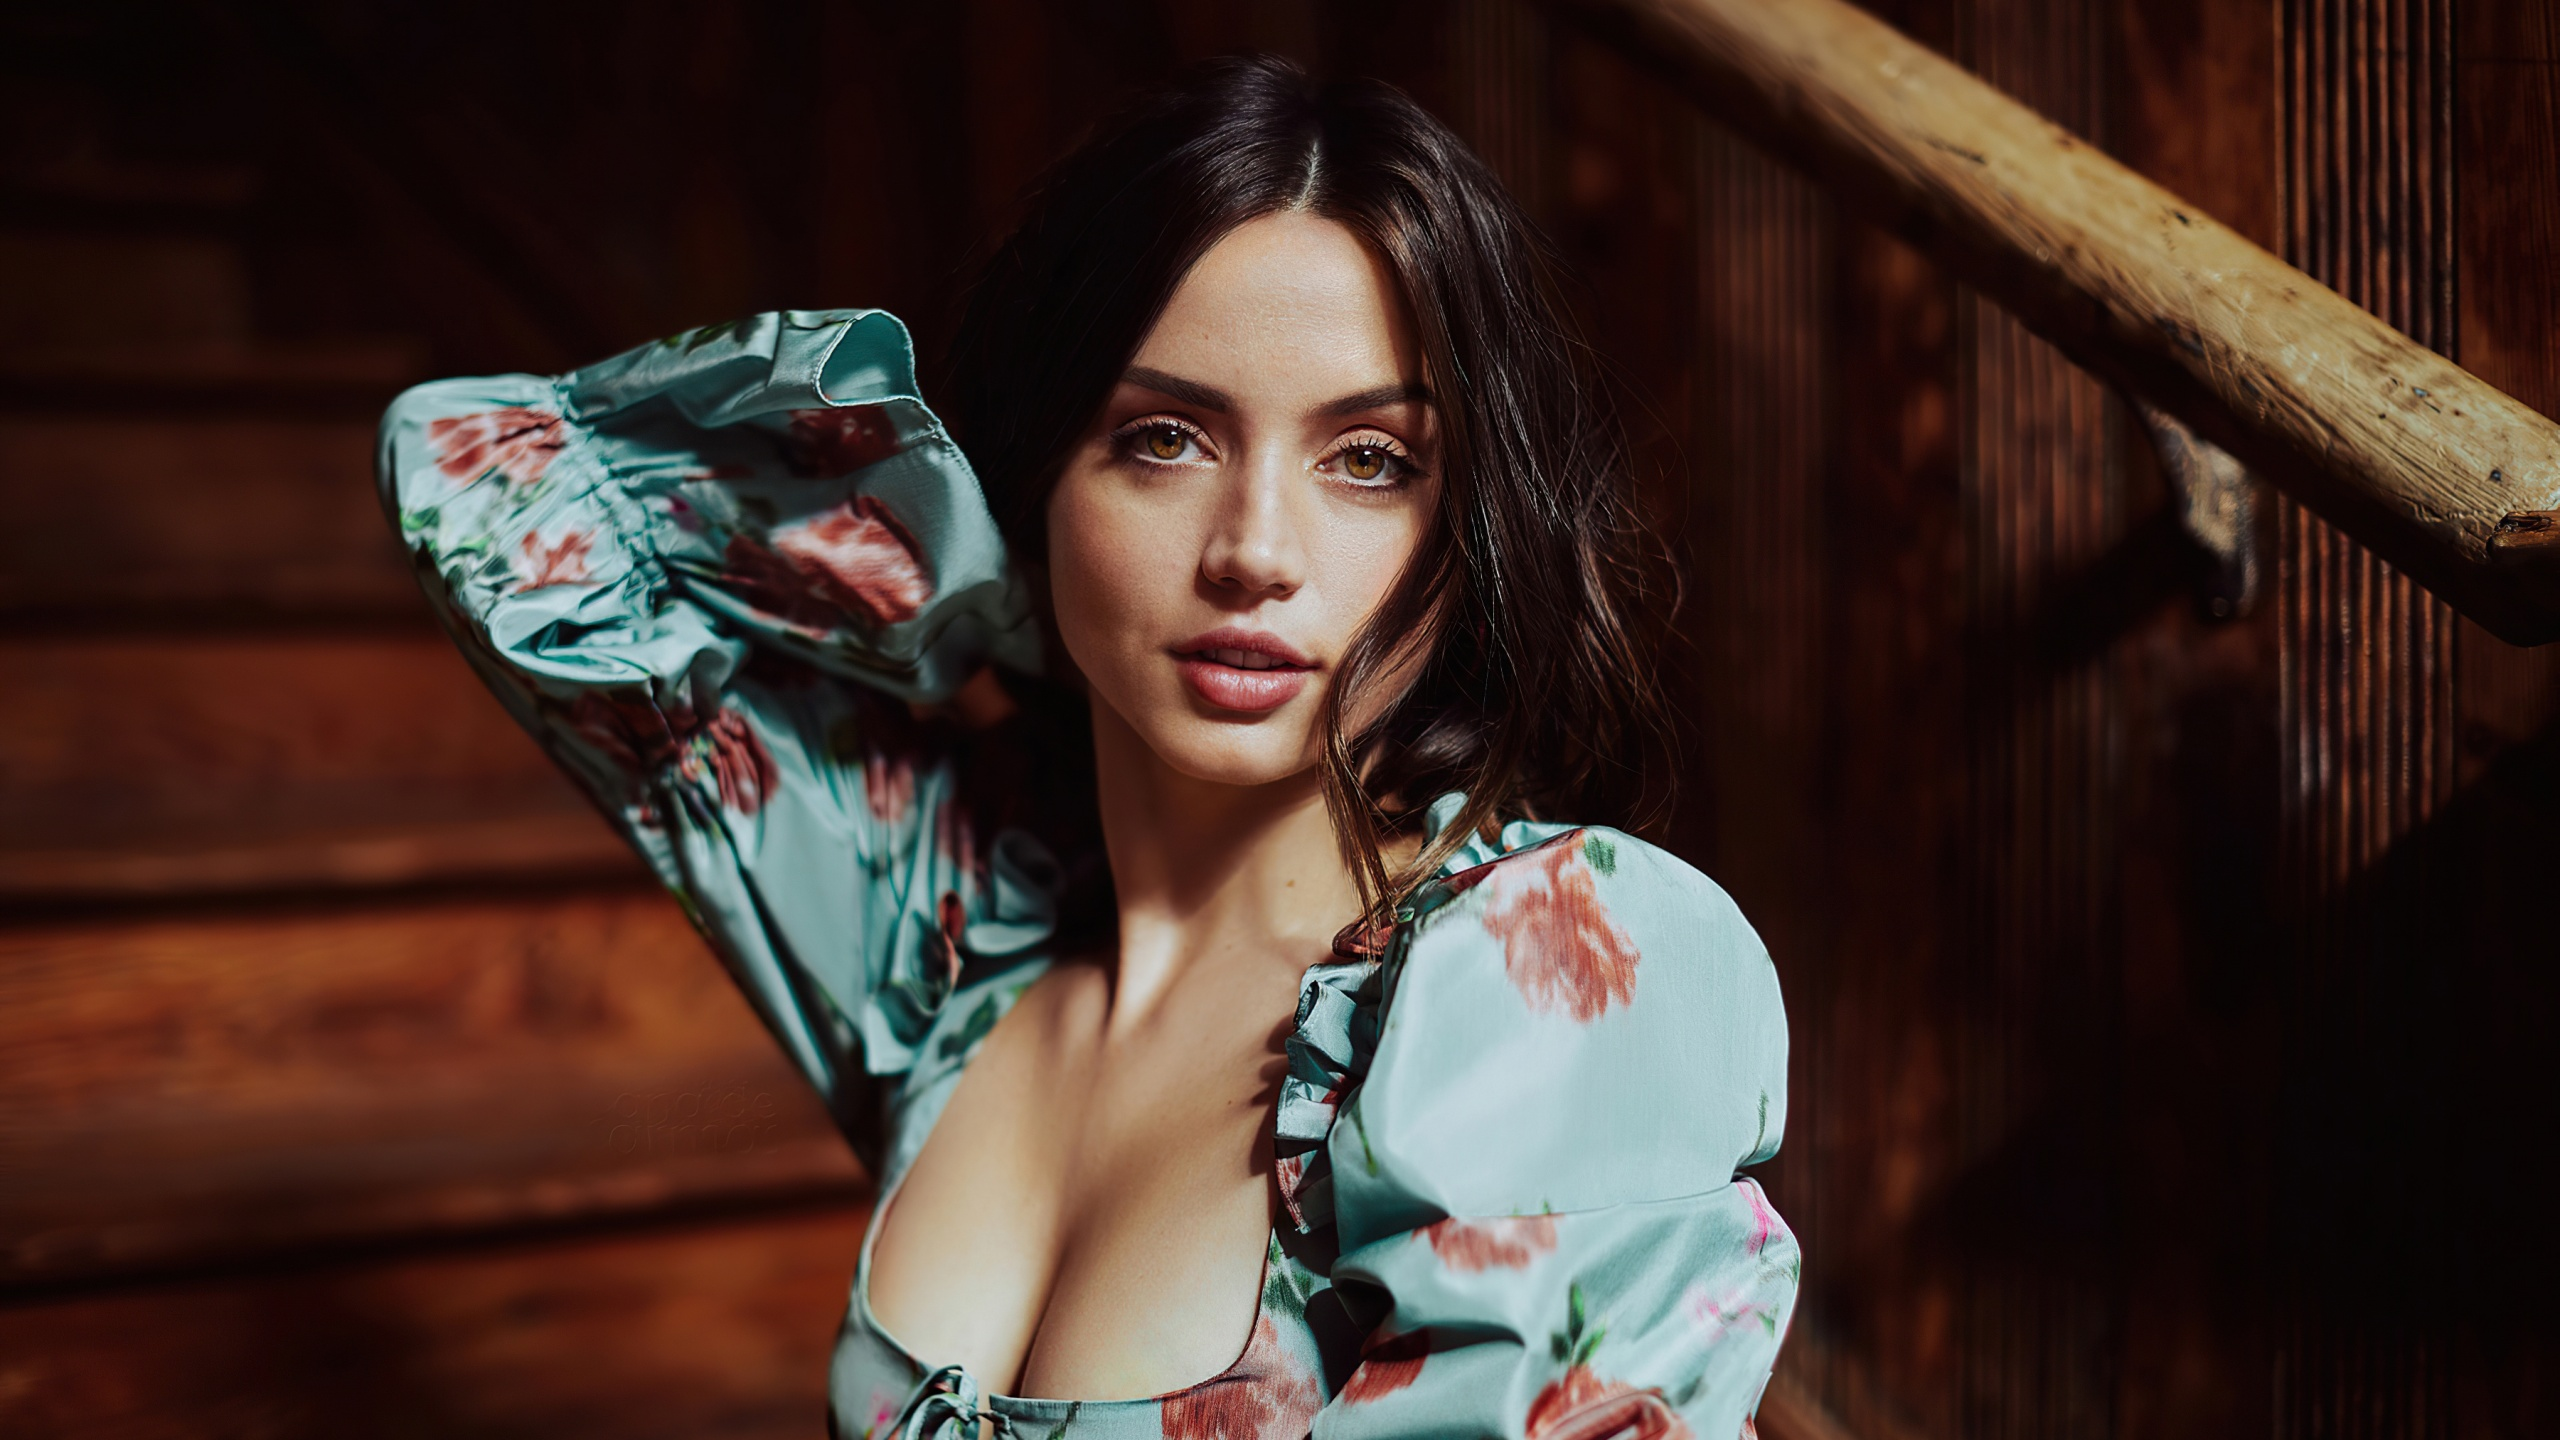 Ana De Armas 4k Wallpaper Hot Actress Photoshoot 2020 People 2629